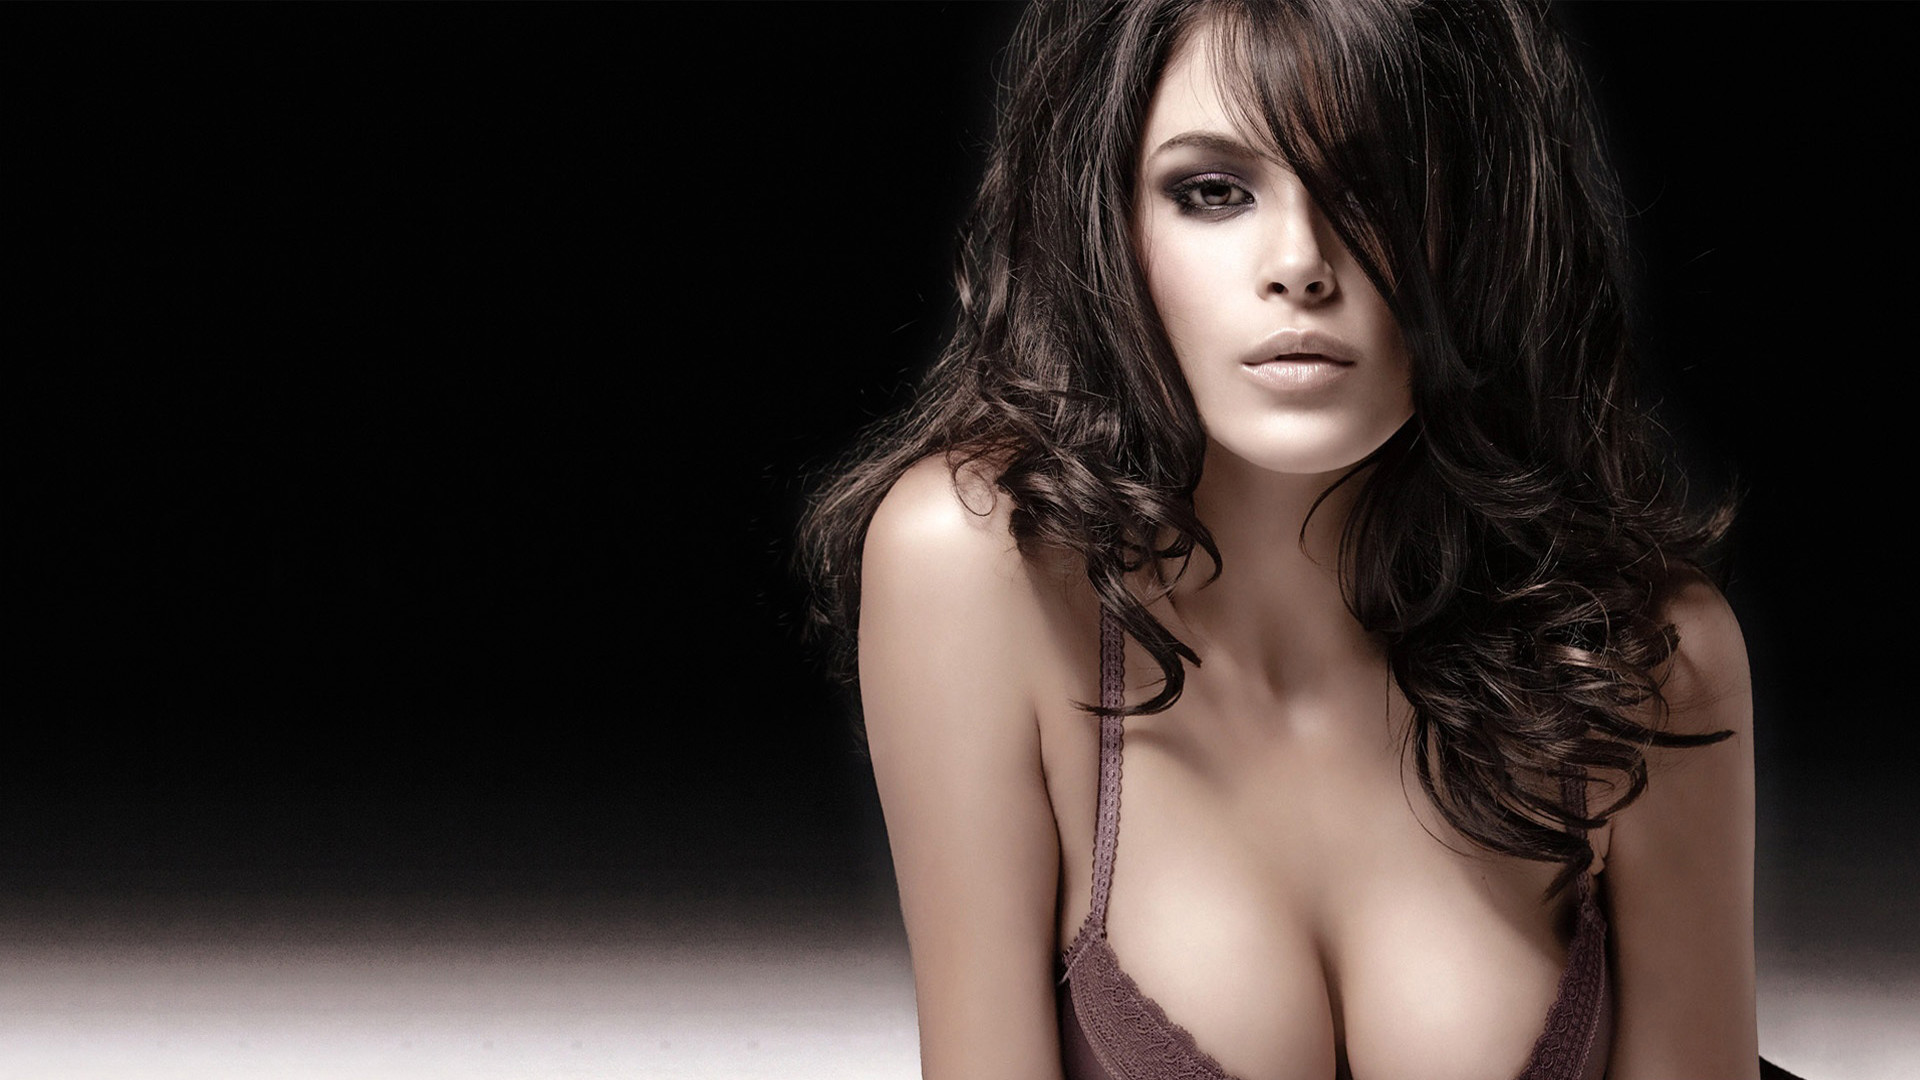 High Def Collection: Full HD HD Girl Wallpapers (In HD Quality 1920×1080